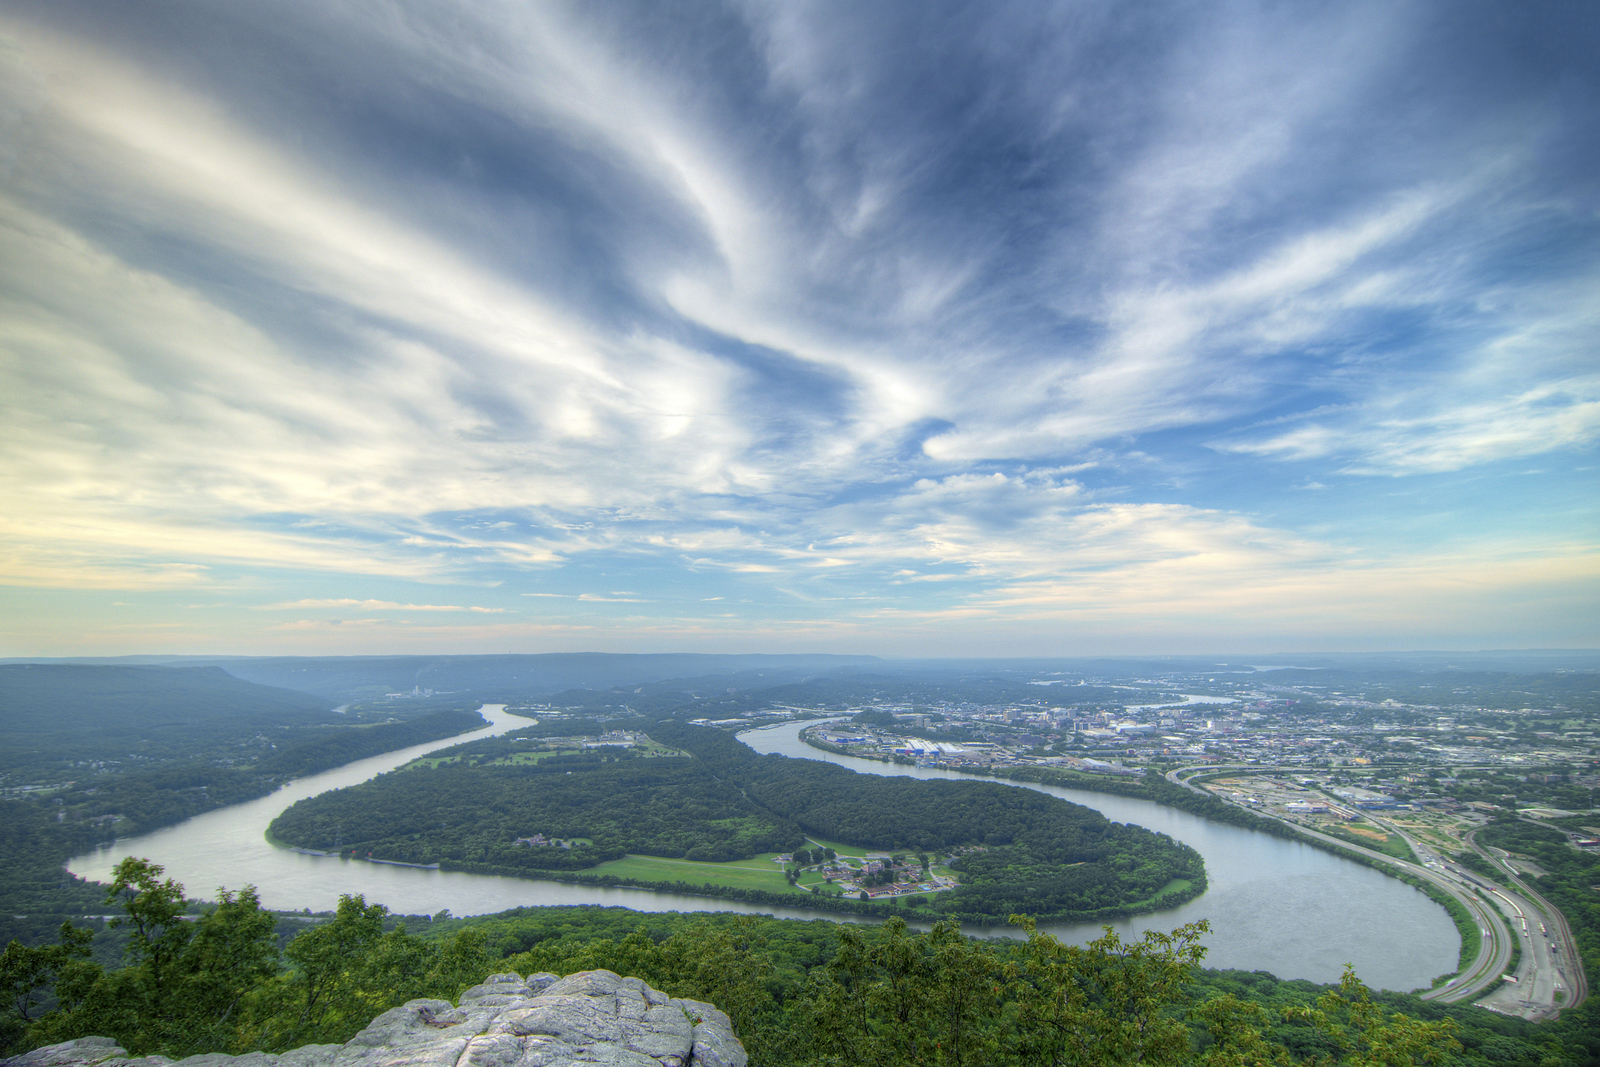 Wispy clouds cover the sky in the late evening sun from a viewpoint at Point Park, part of the Chickamauga & Chattanooga National Military Park, in Lookout Mountain, TN on Tuesday, July 21, 2015. Copyright 2015 Jason Barnette